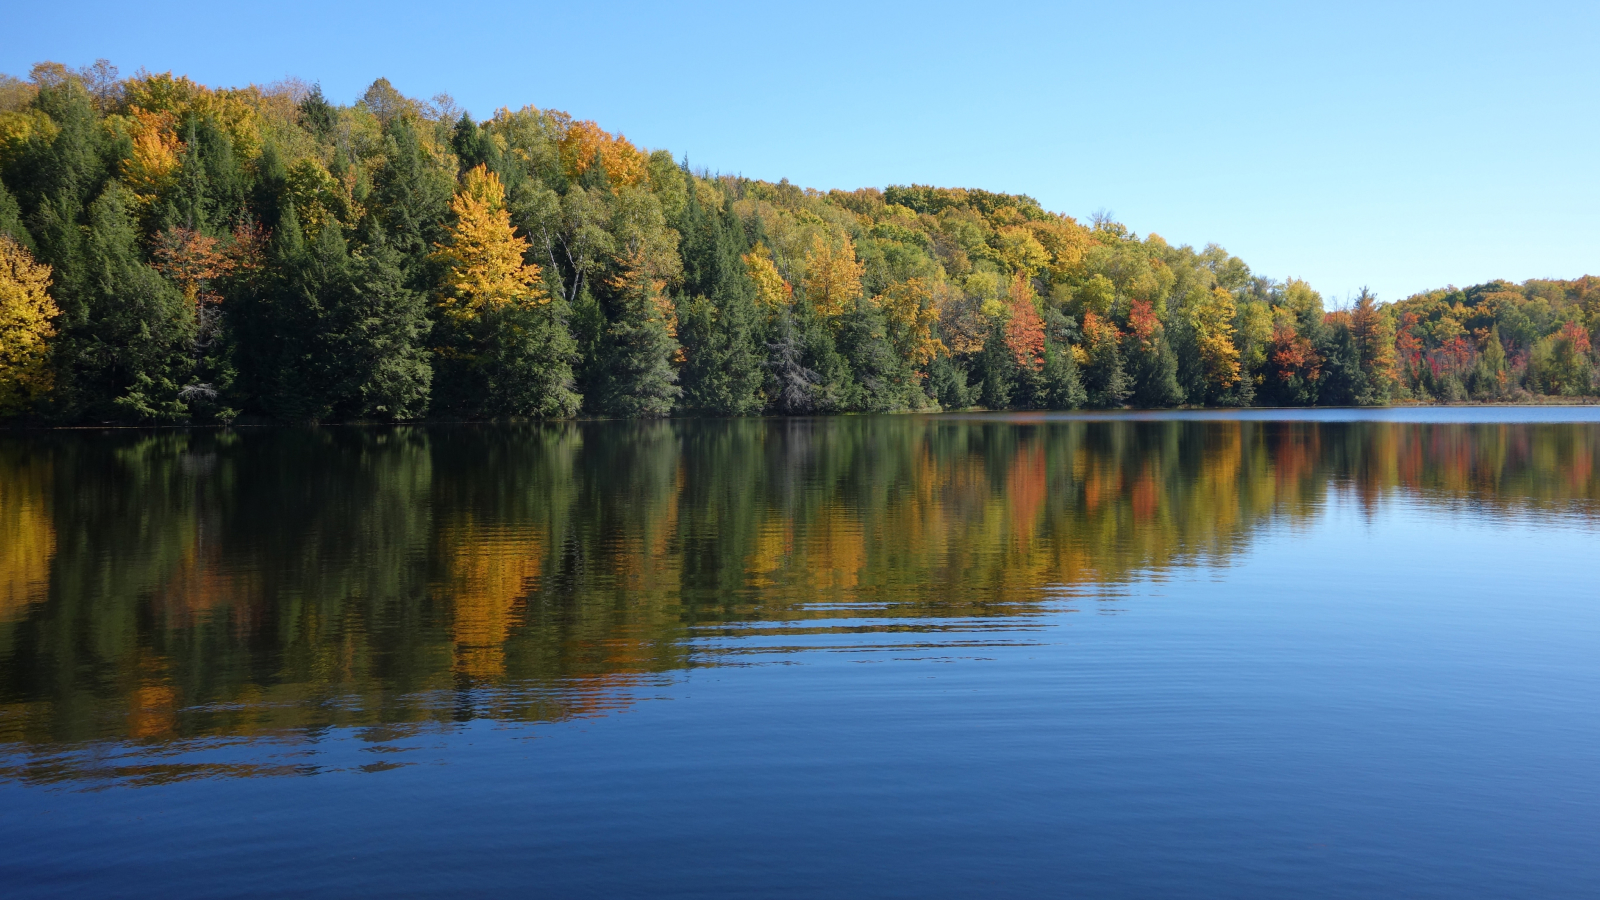 Background image of trees and a lake in the fall